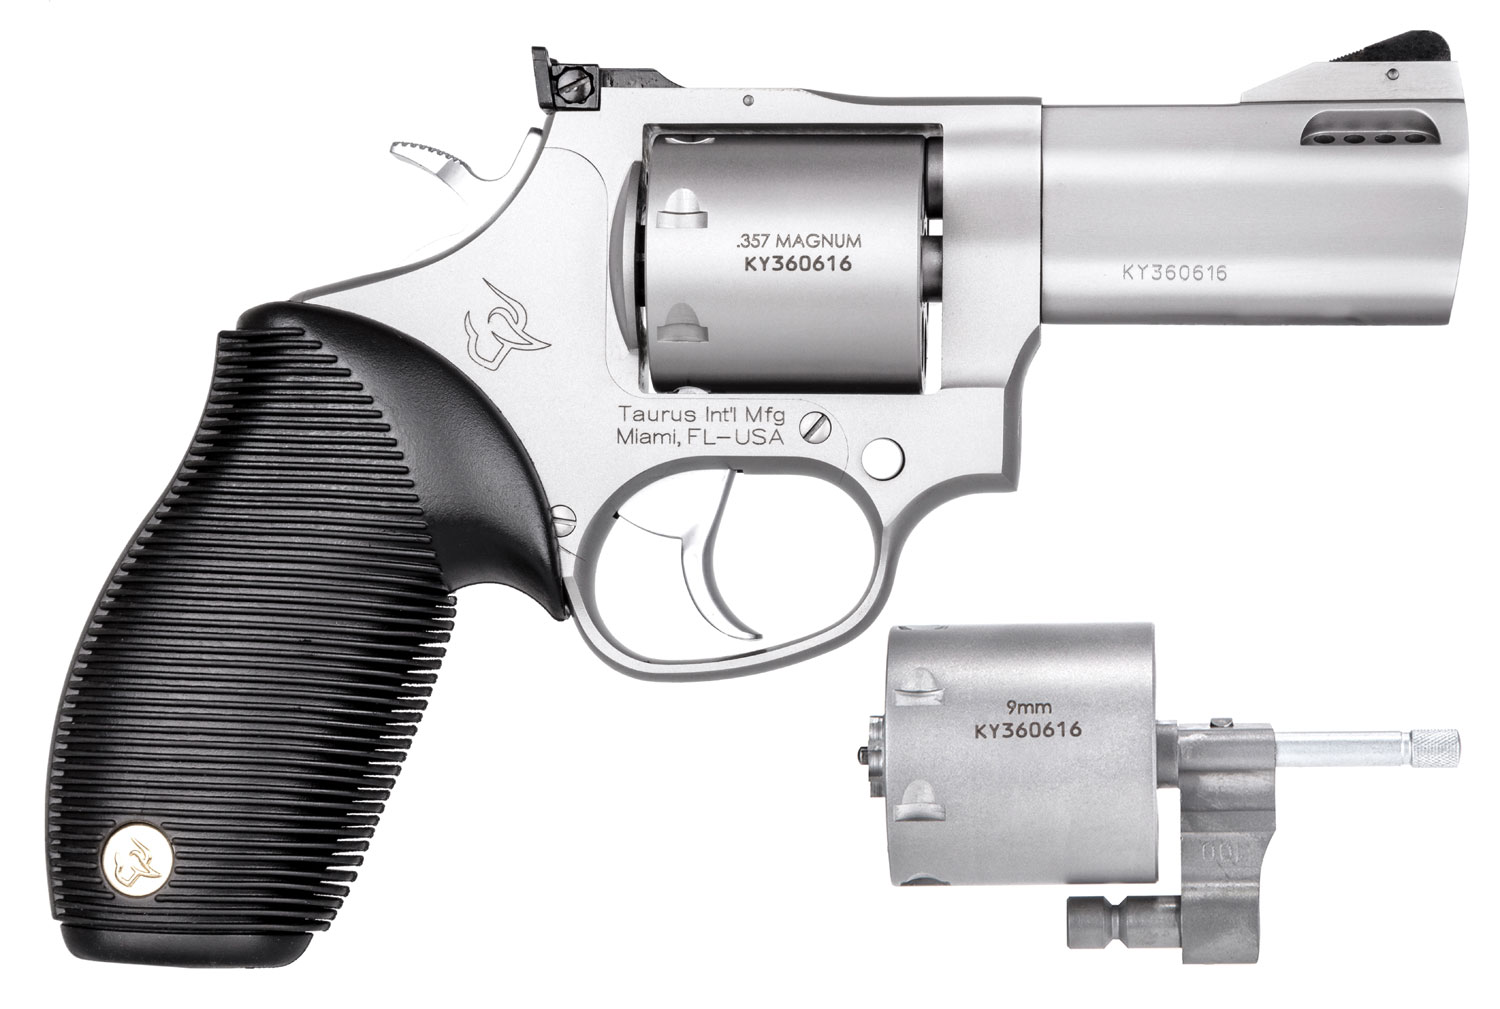 Taurus 2692039 692 Standard Single/Double 38 Special/357 Magnum/9mm 3